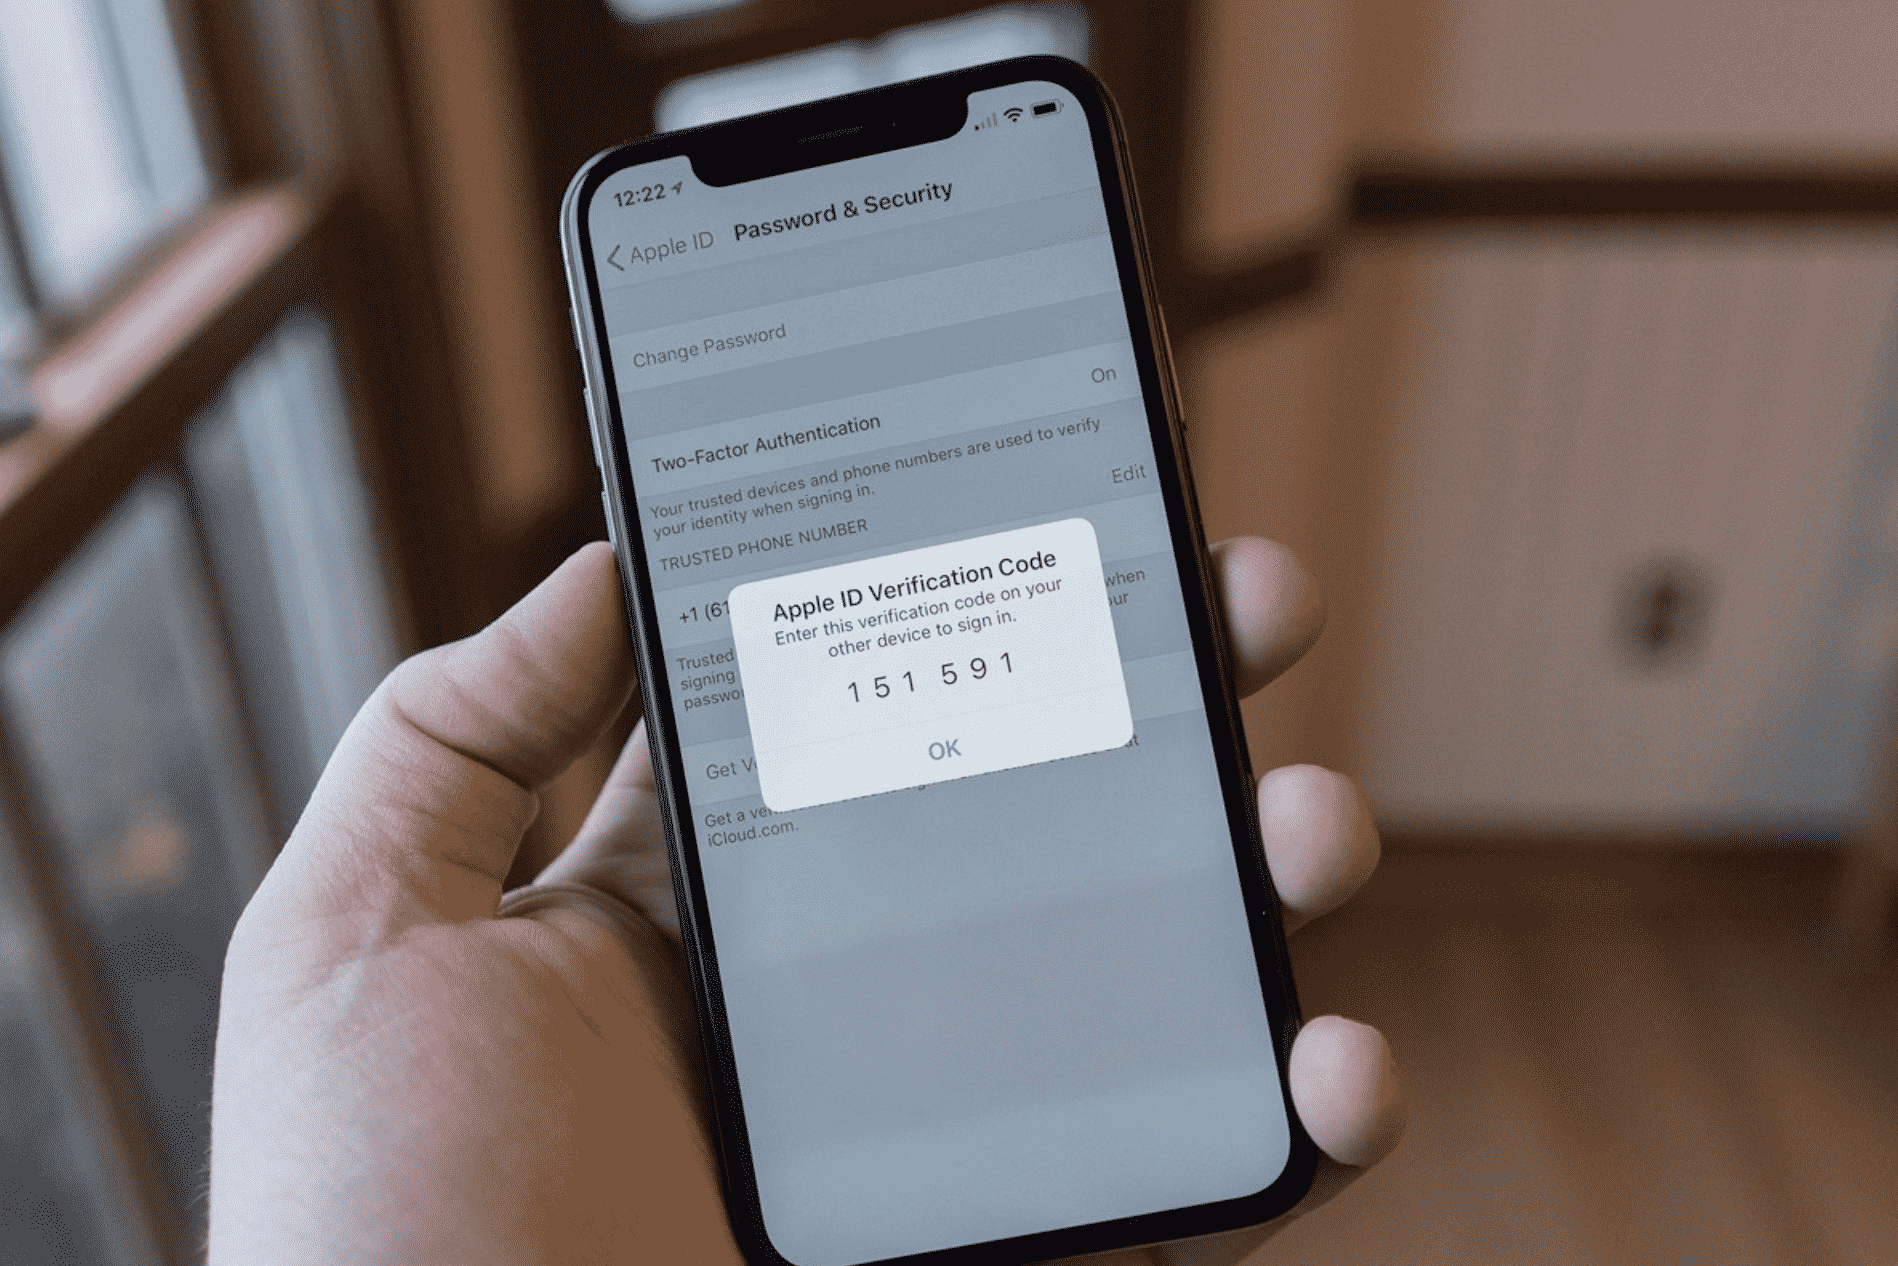 Standardized Passcode SMS Proposed by Apple Engineers